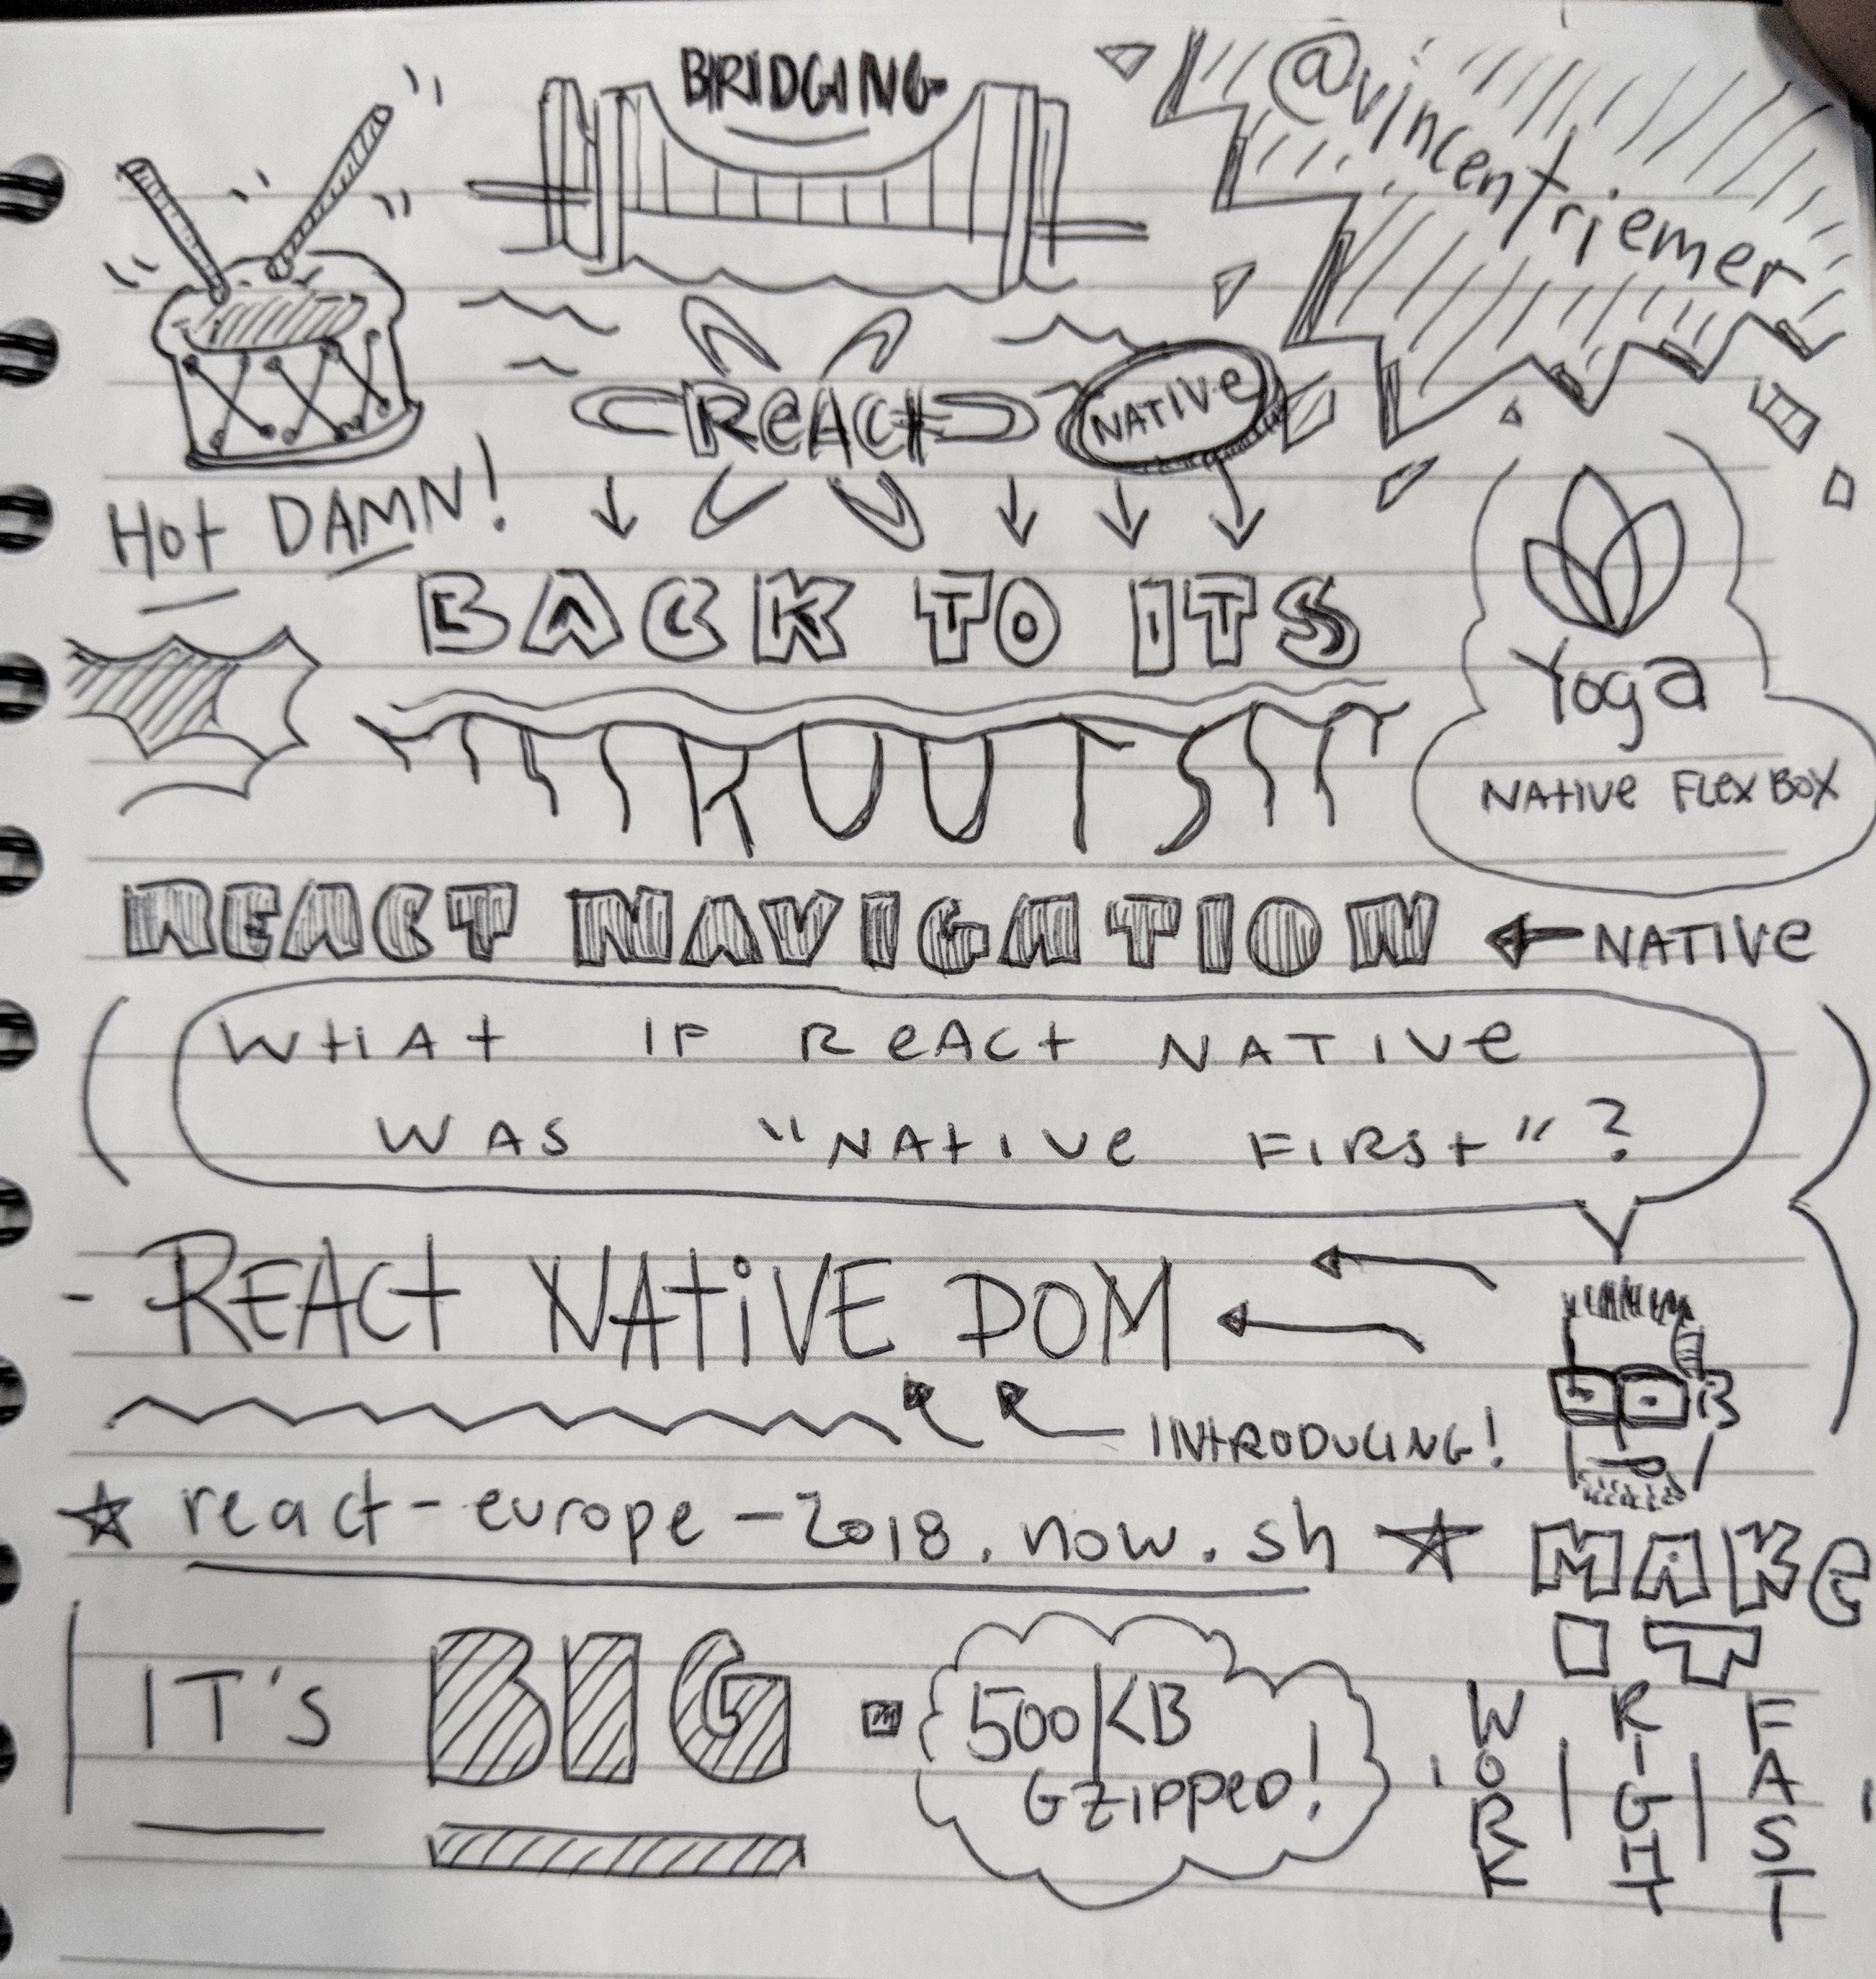 Notes on Bridging React Native Back to its Roots